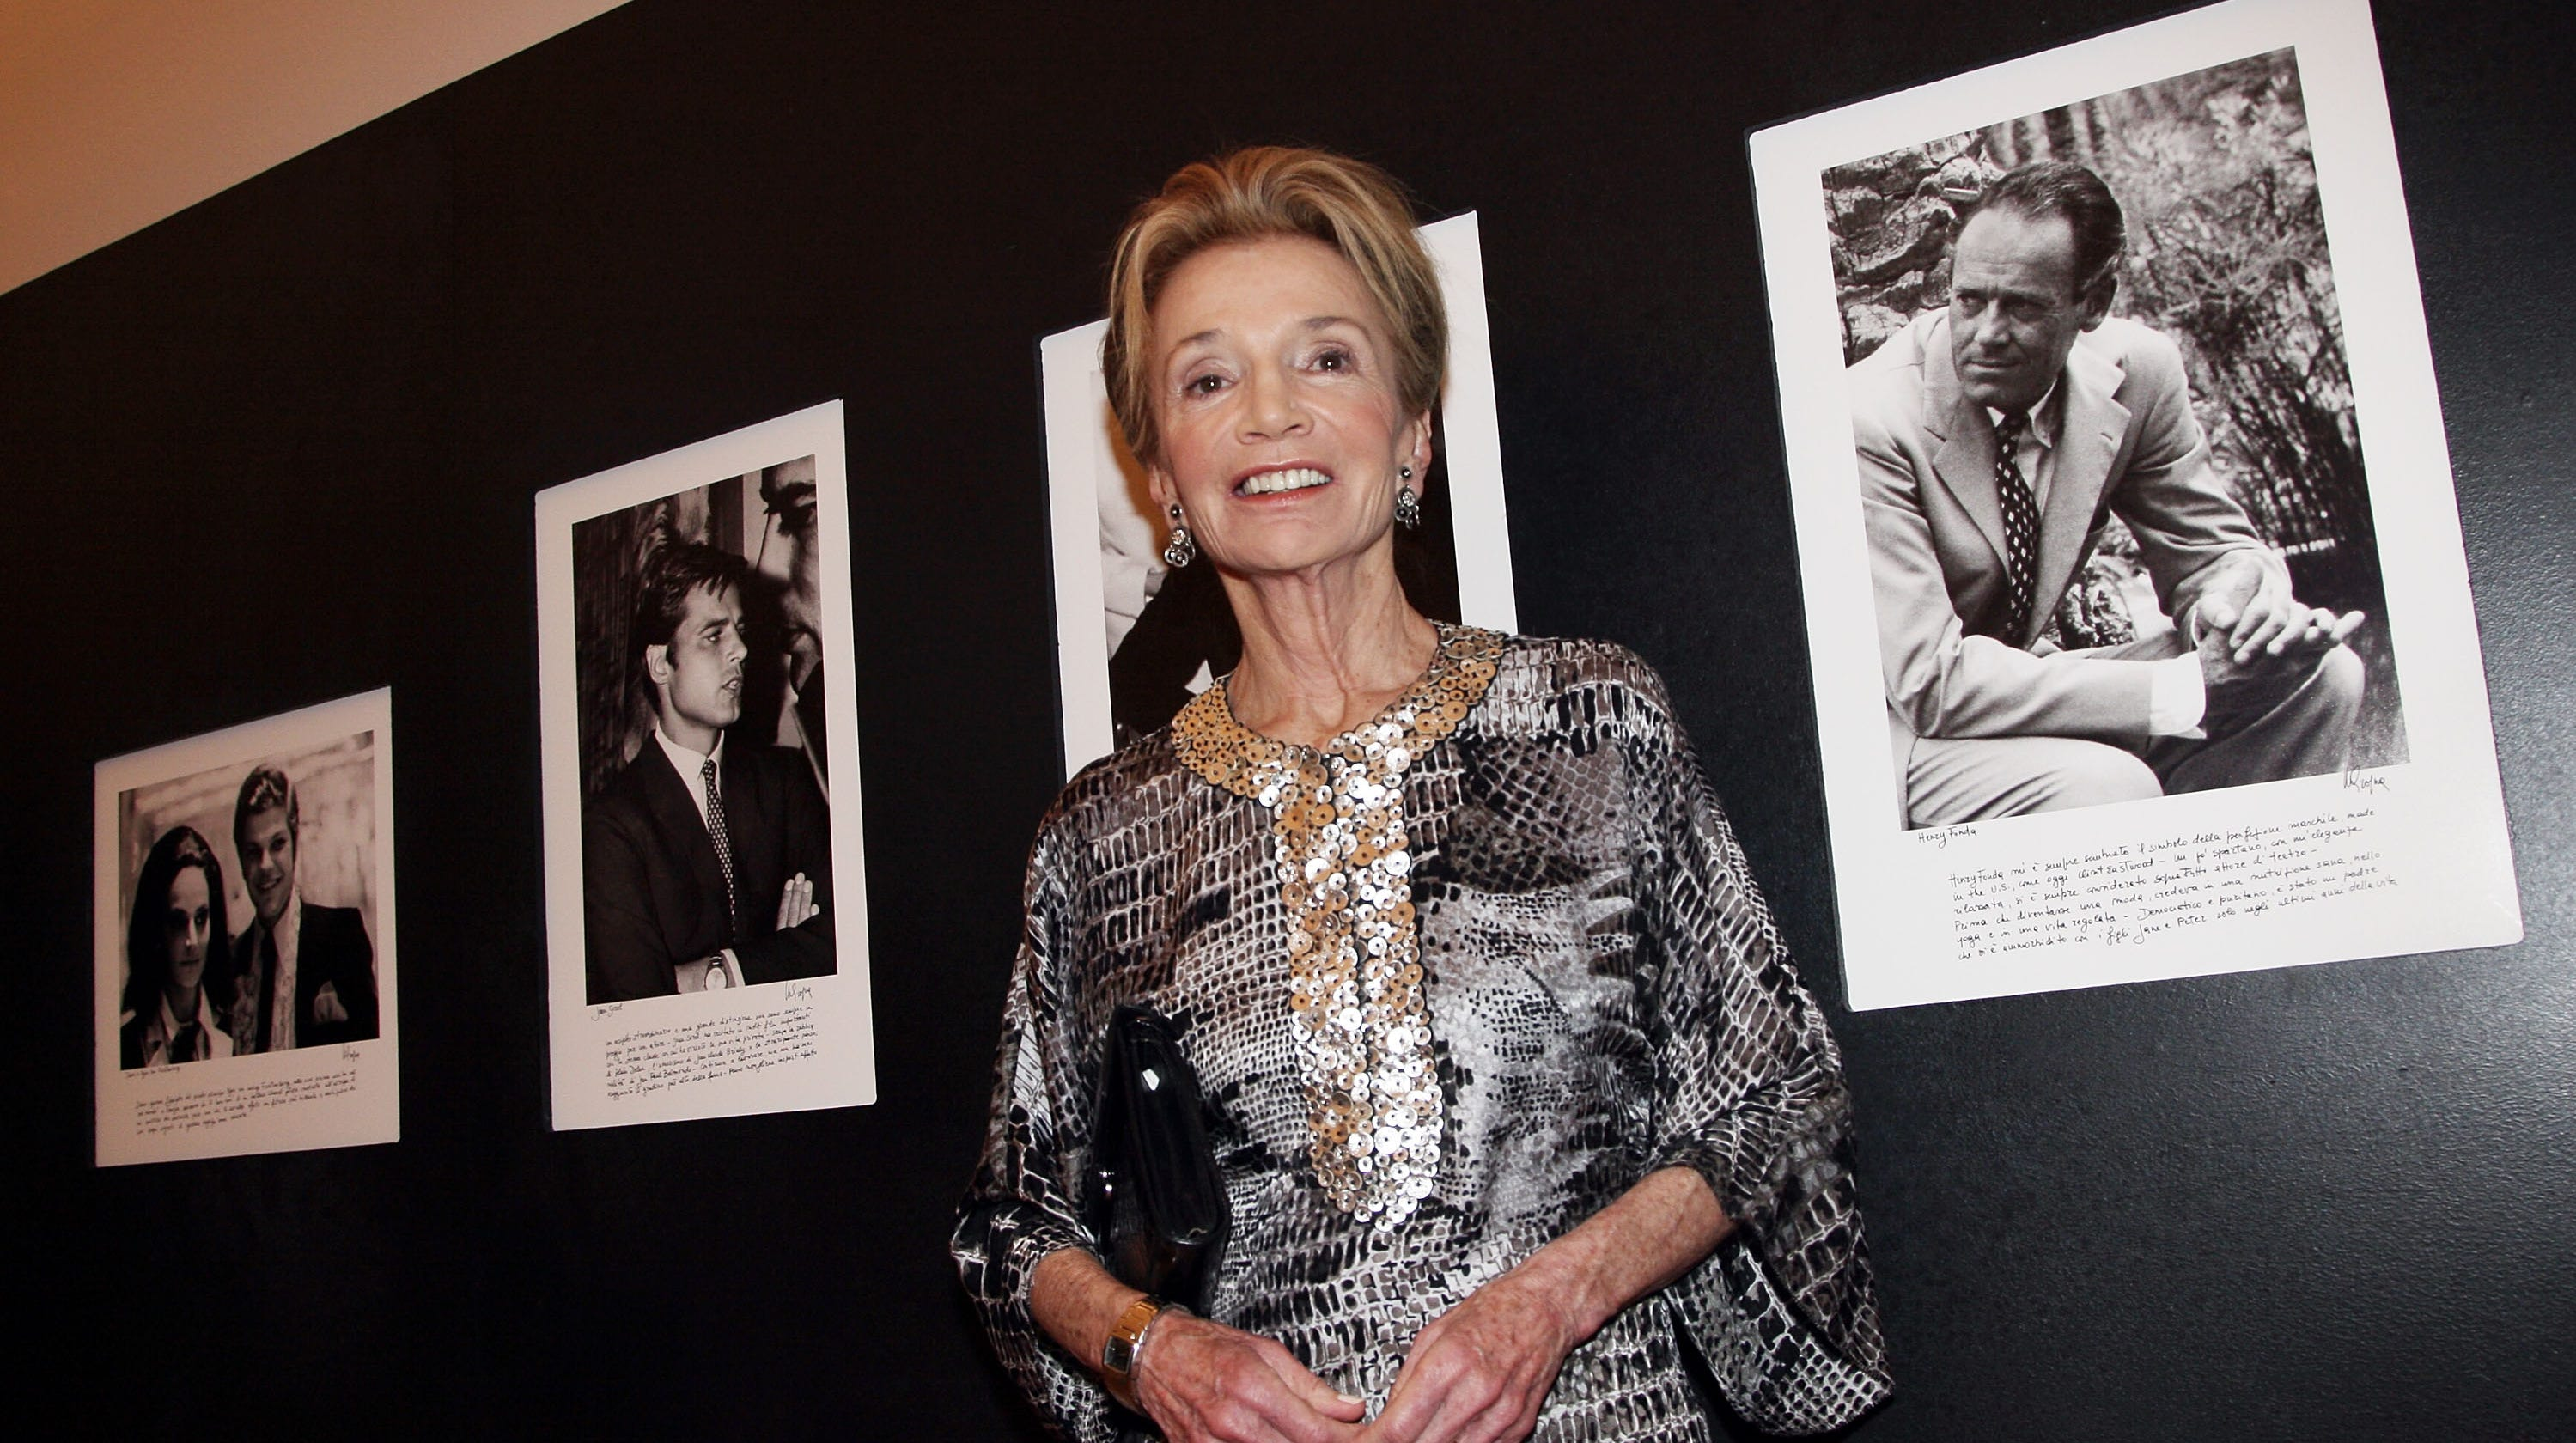 Lee Radziwill, the sister of Jacqueline Kennedy Onassis, has died at 85.